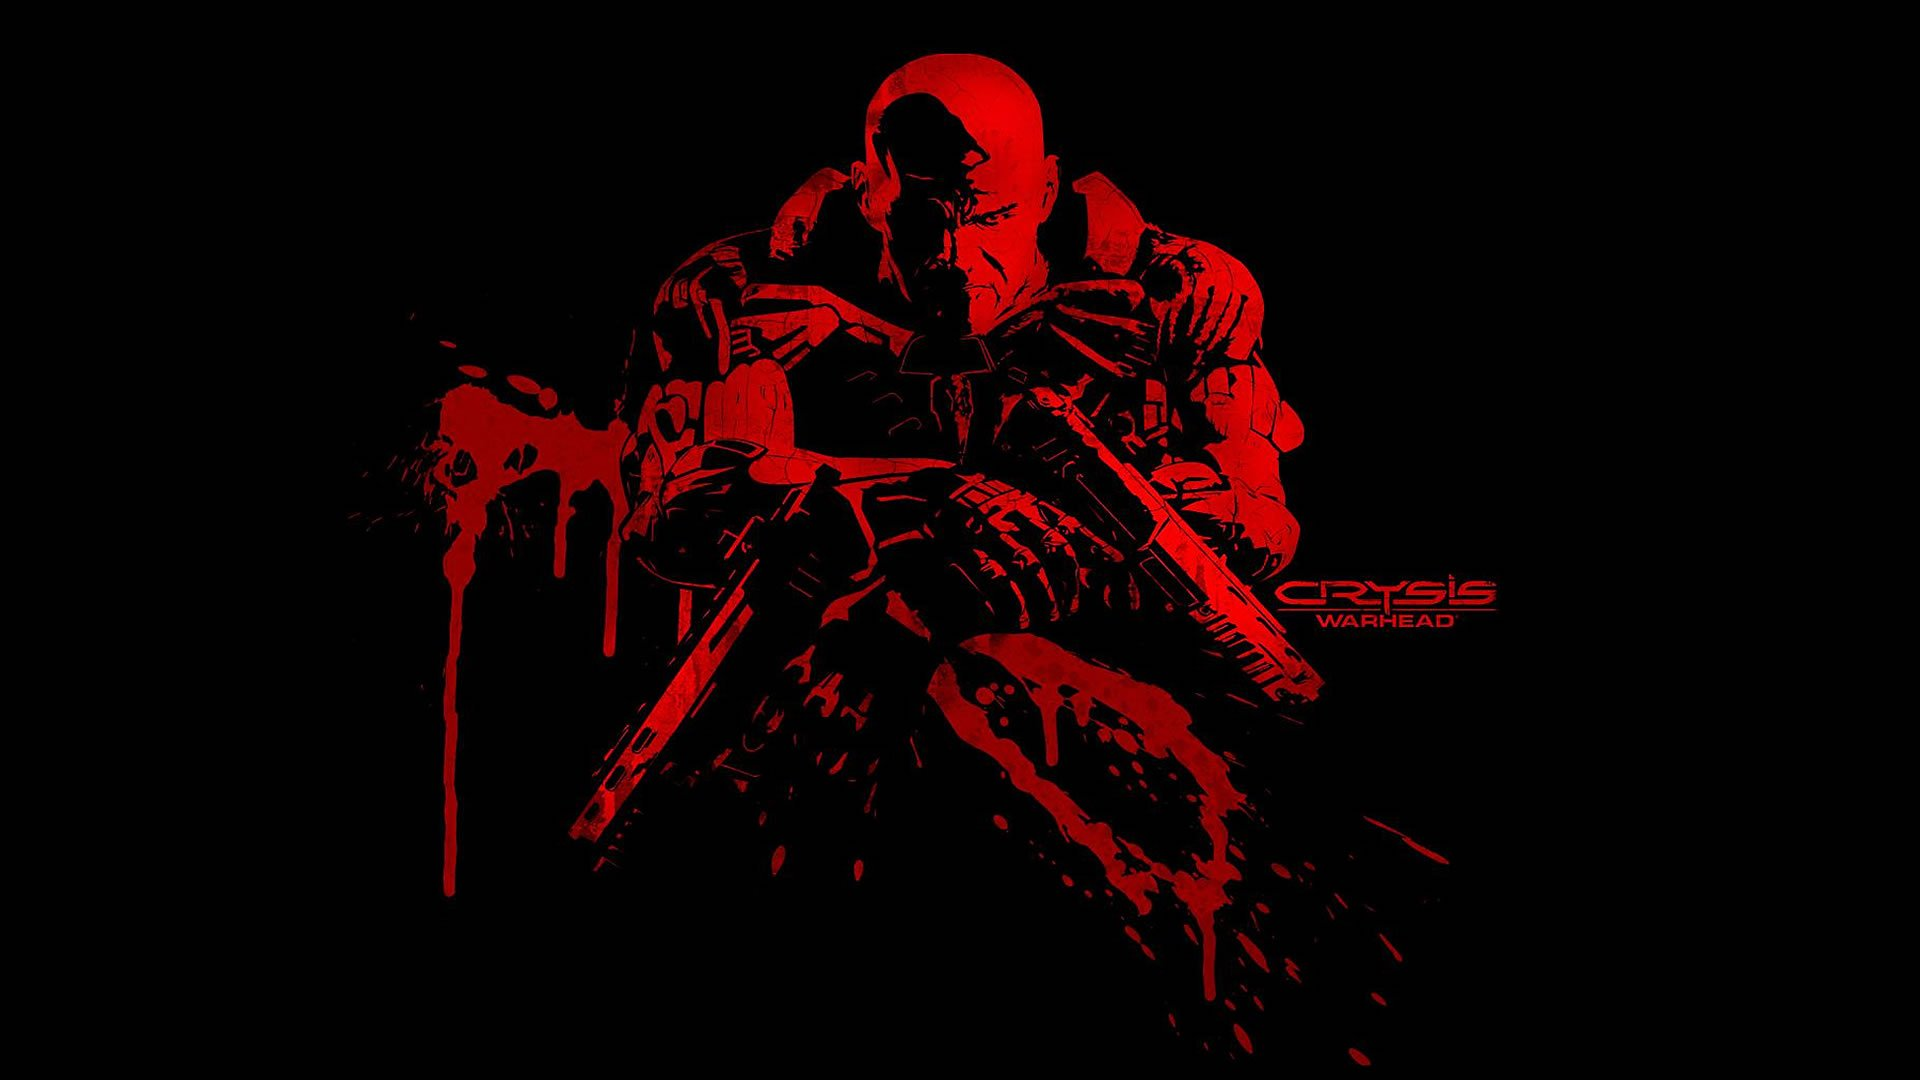 Psycho In Blood Red   Action Games Wallpaper Image featuring Crysis 1920x1080